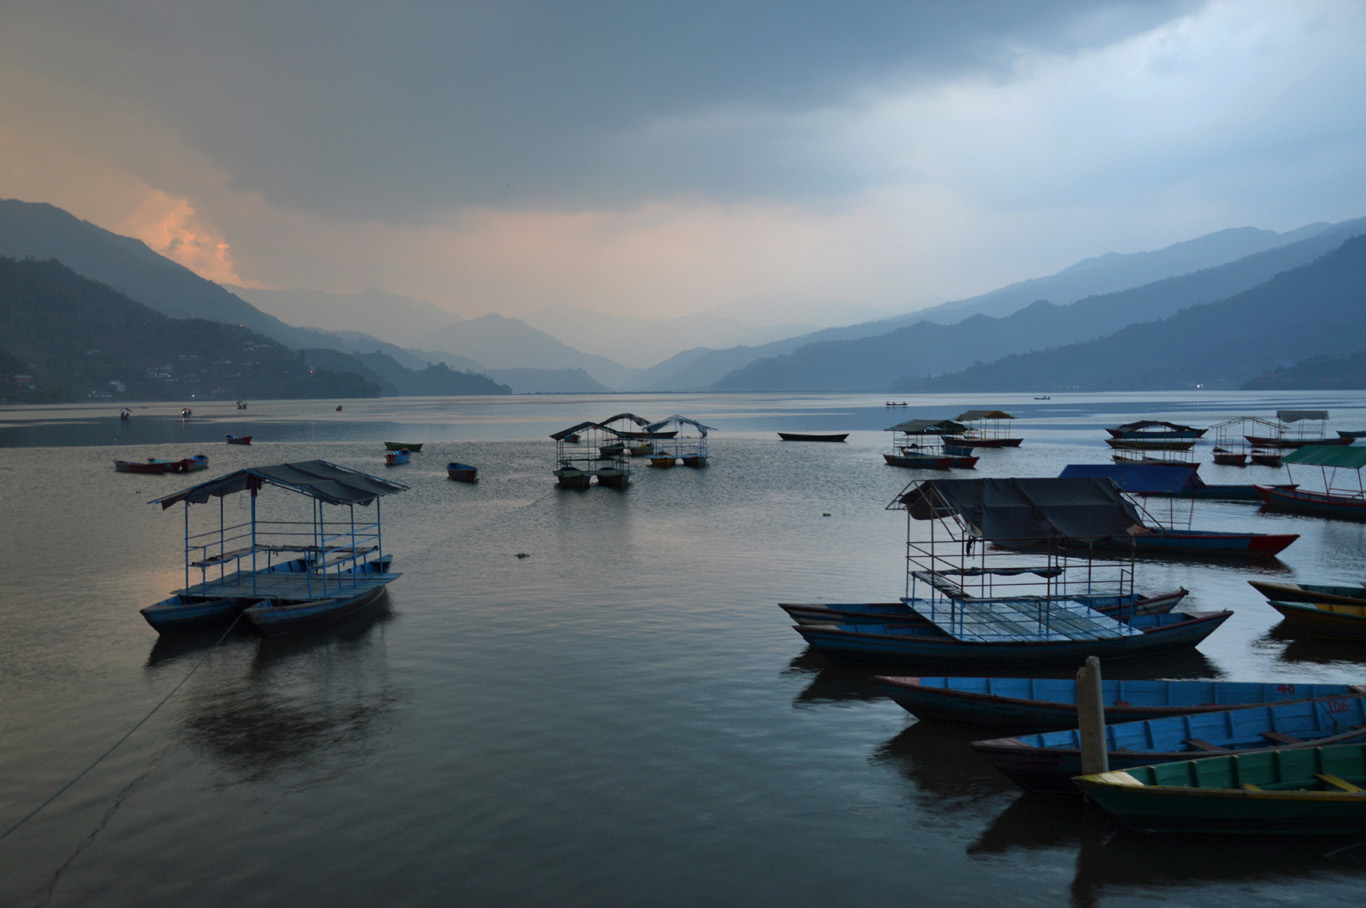 Phewa Lake - right before the storm